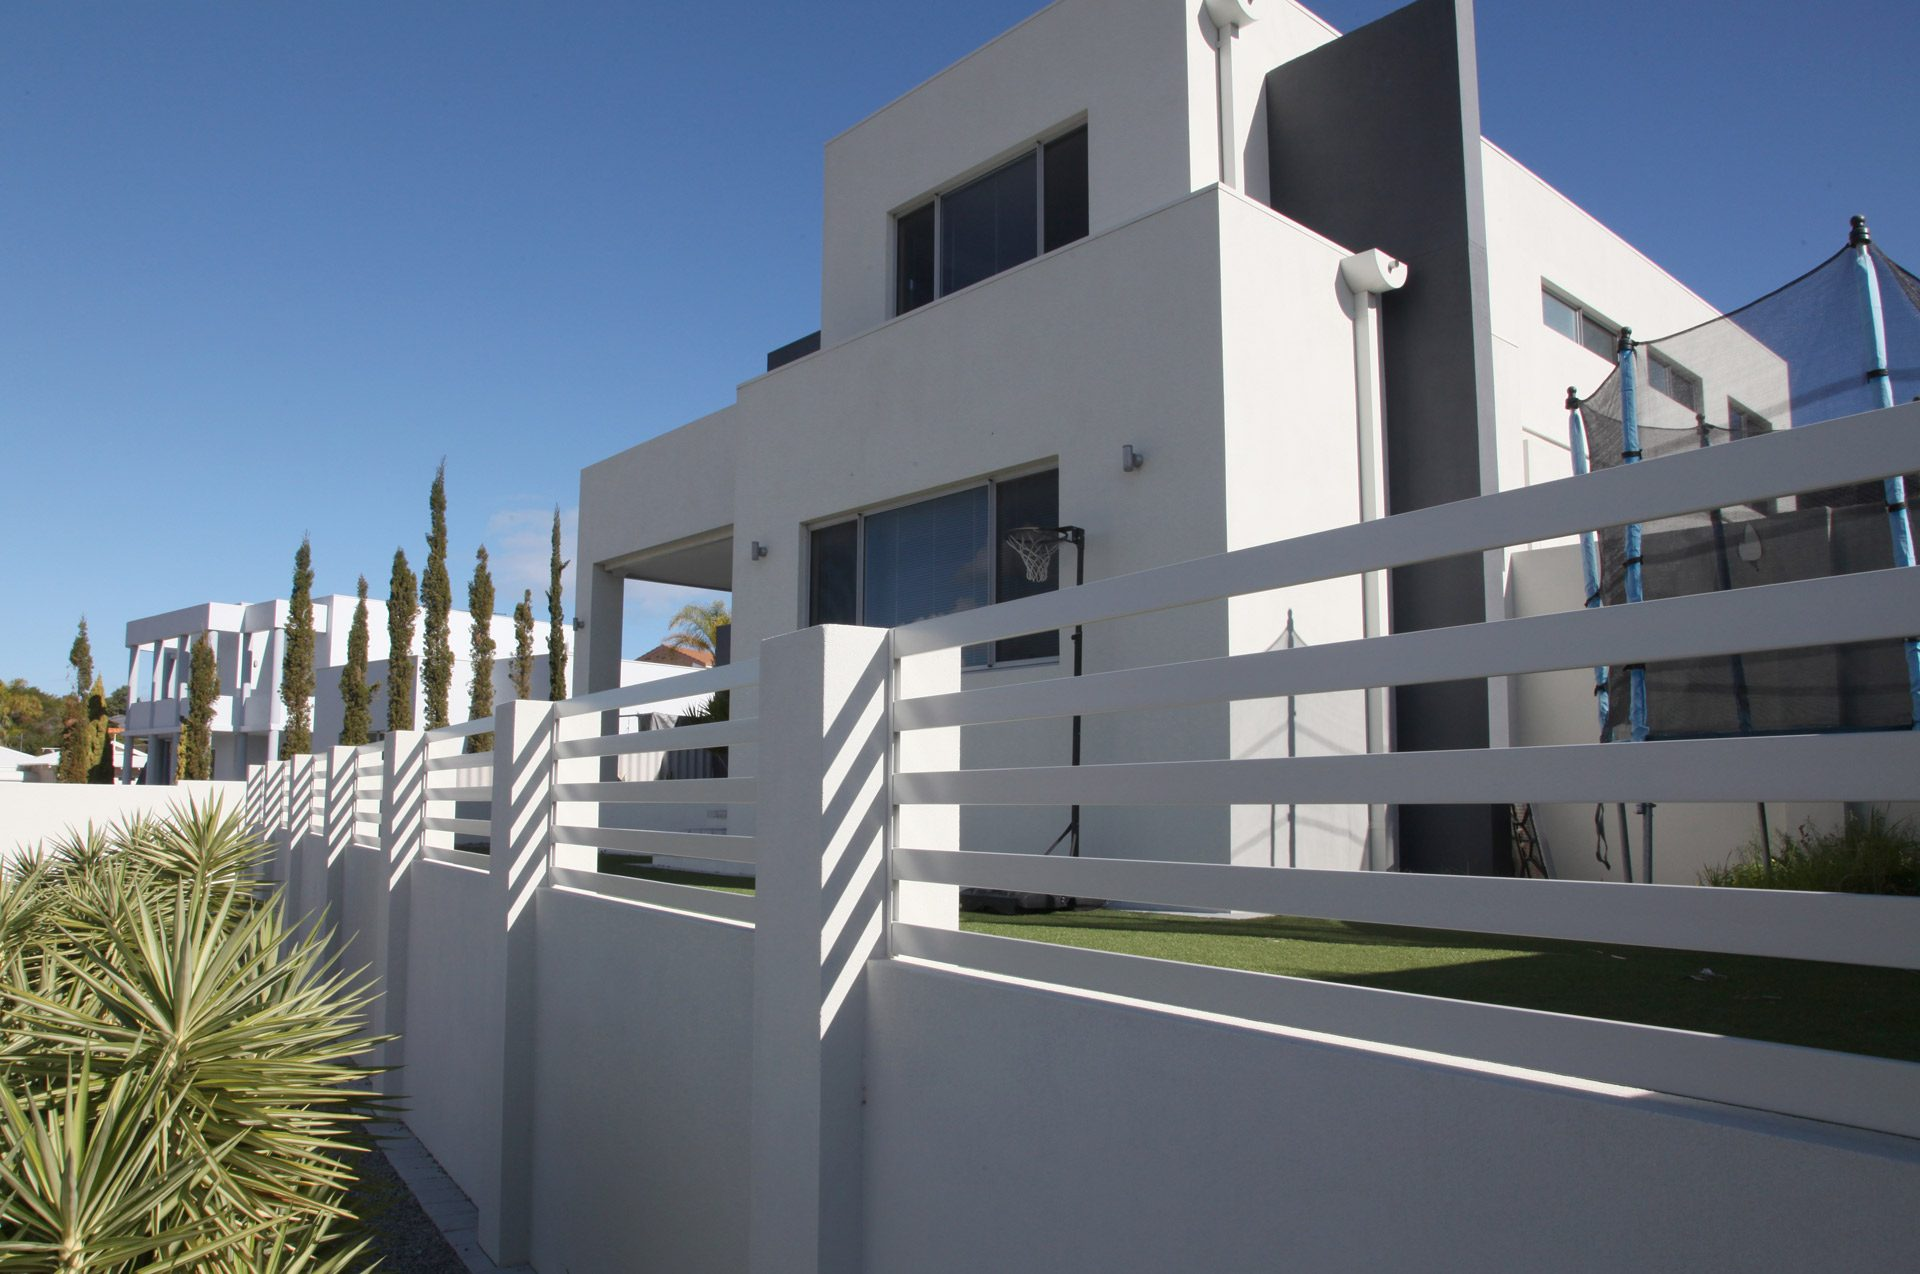 Aluminium Slat Fences are well suited to Modern Houses